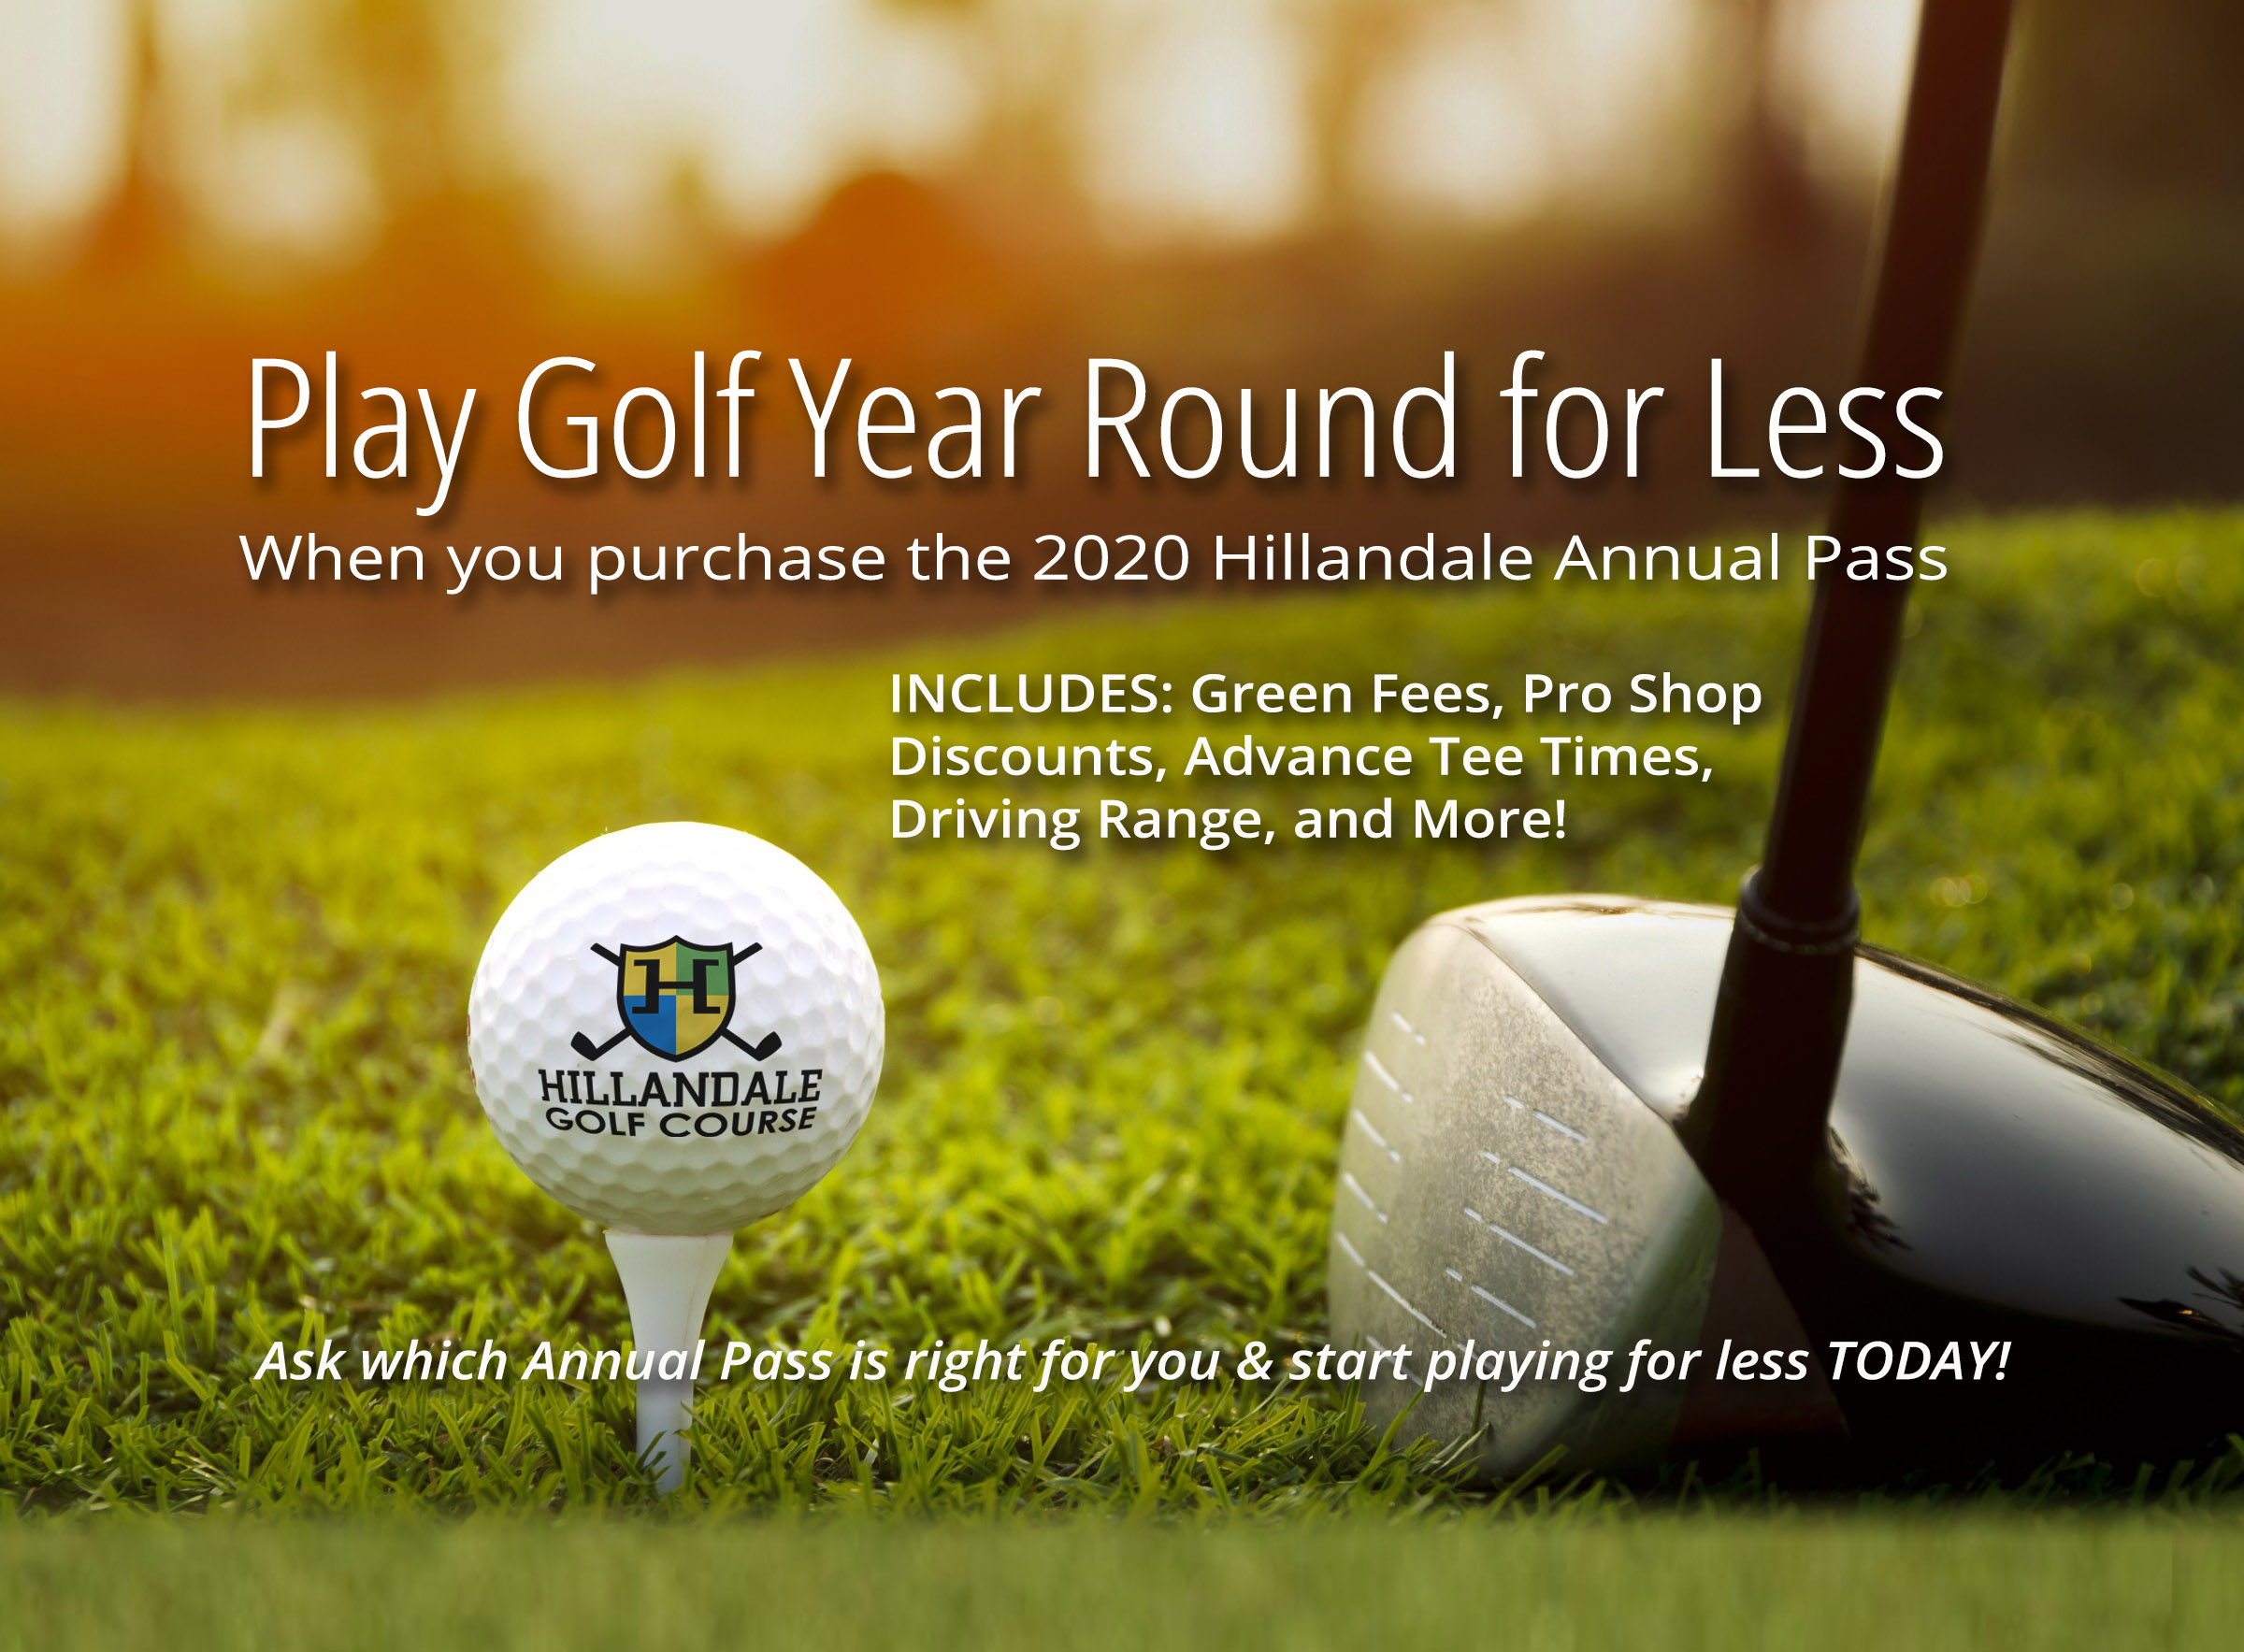 Play for less with the Hillandale Annual Pass